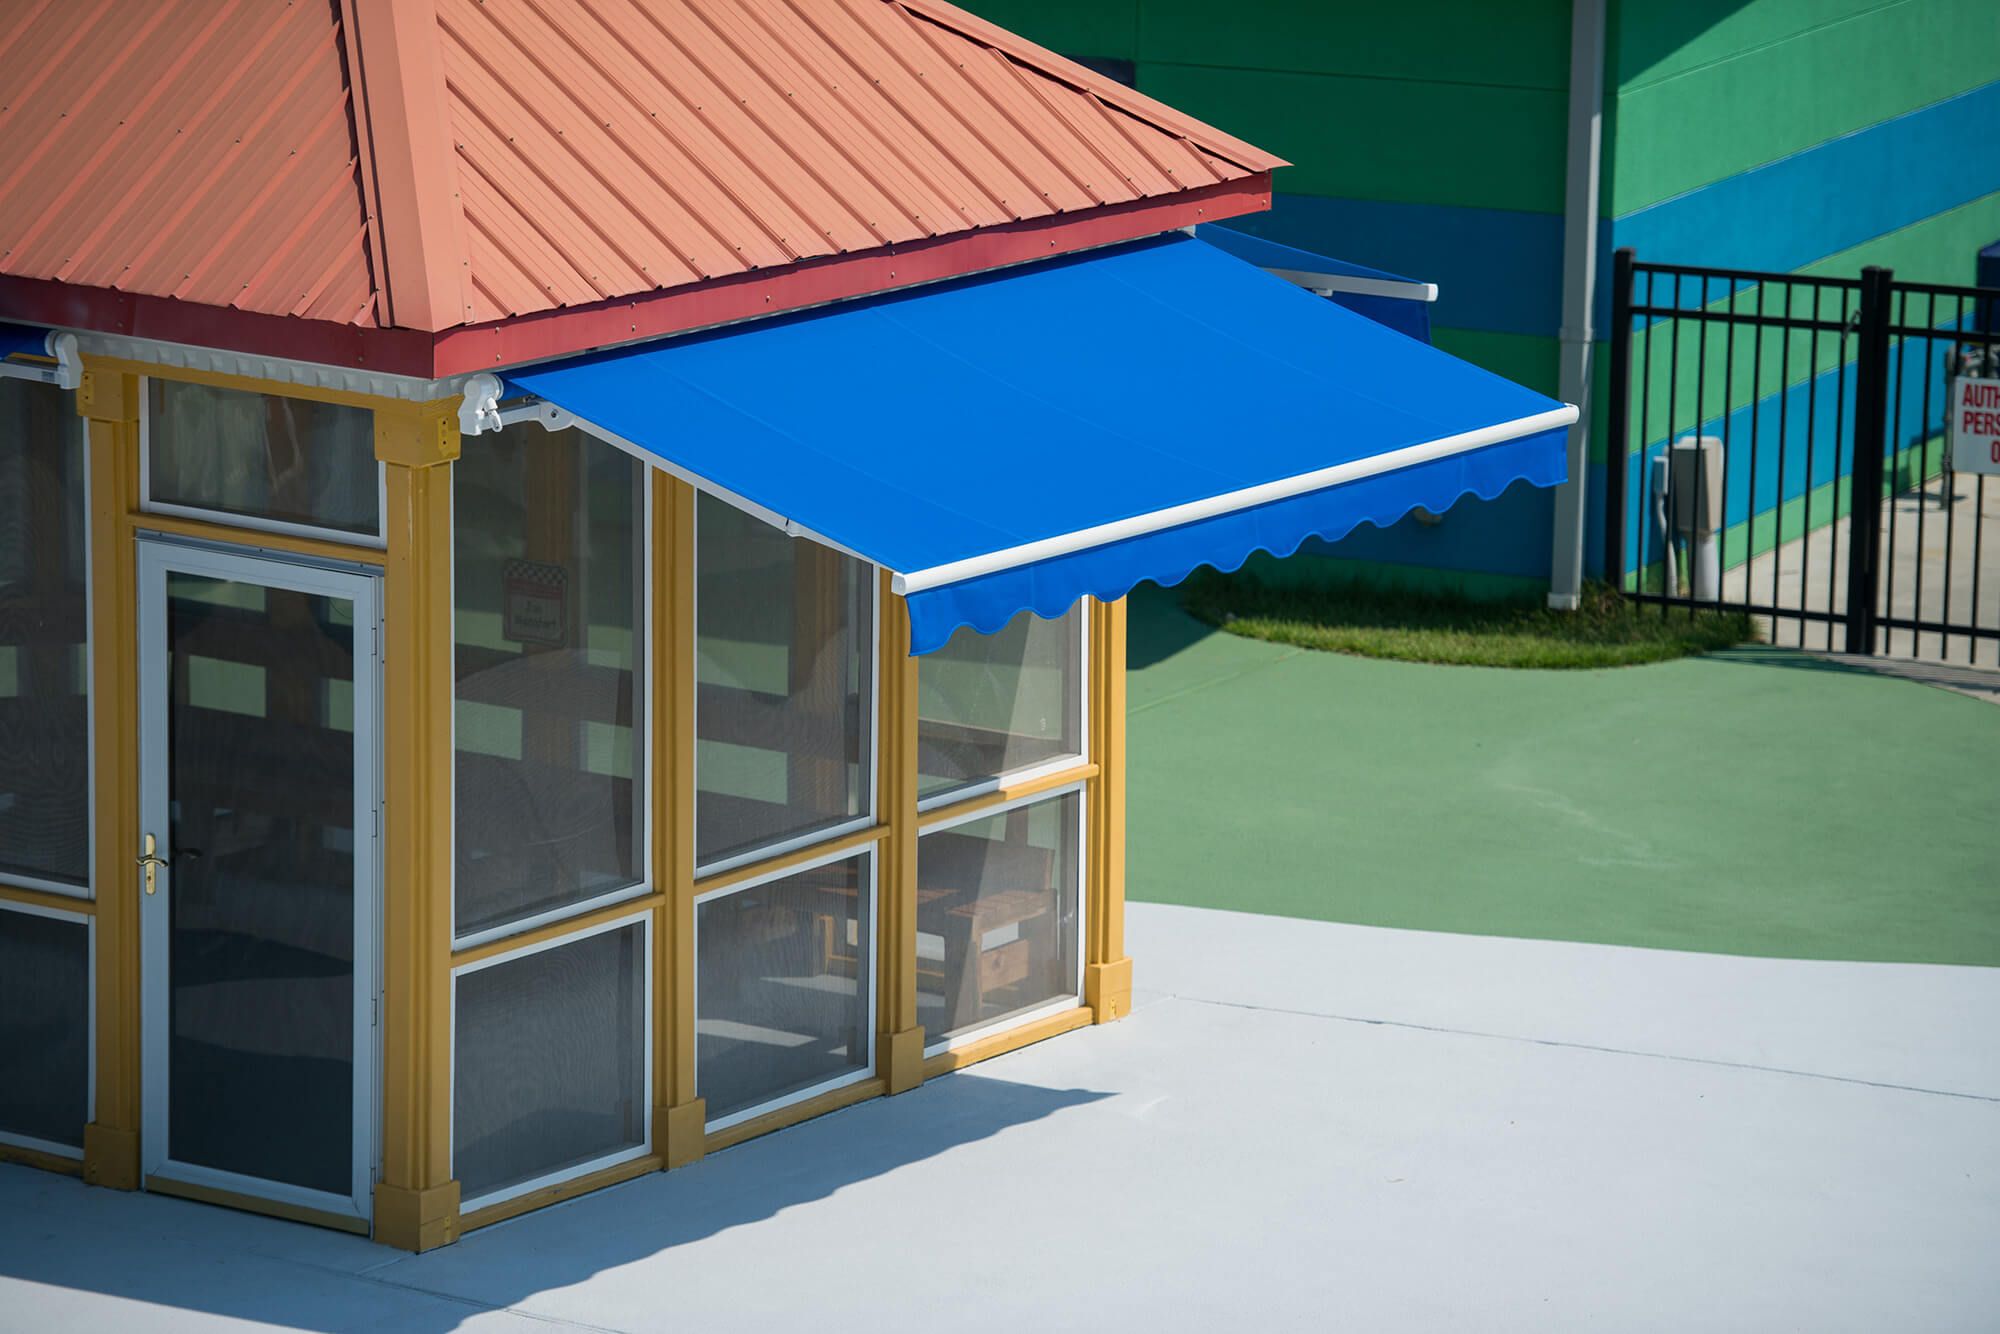 Extended retractable awning with blue Sunbrella fabric